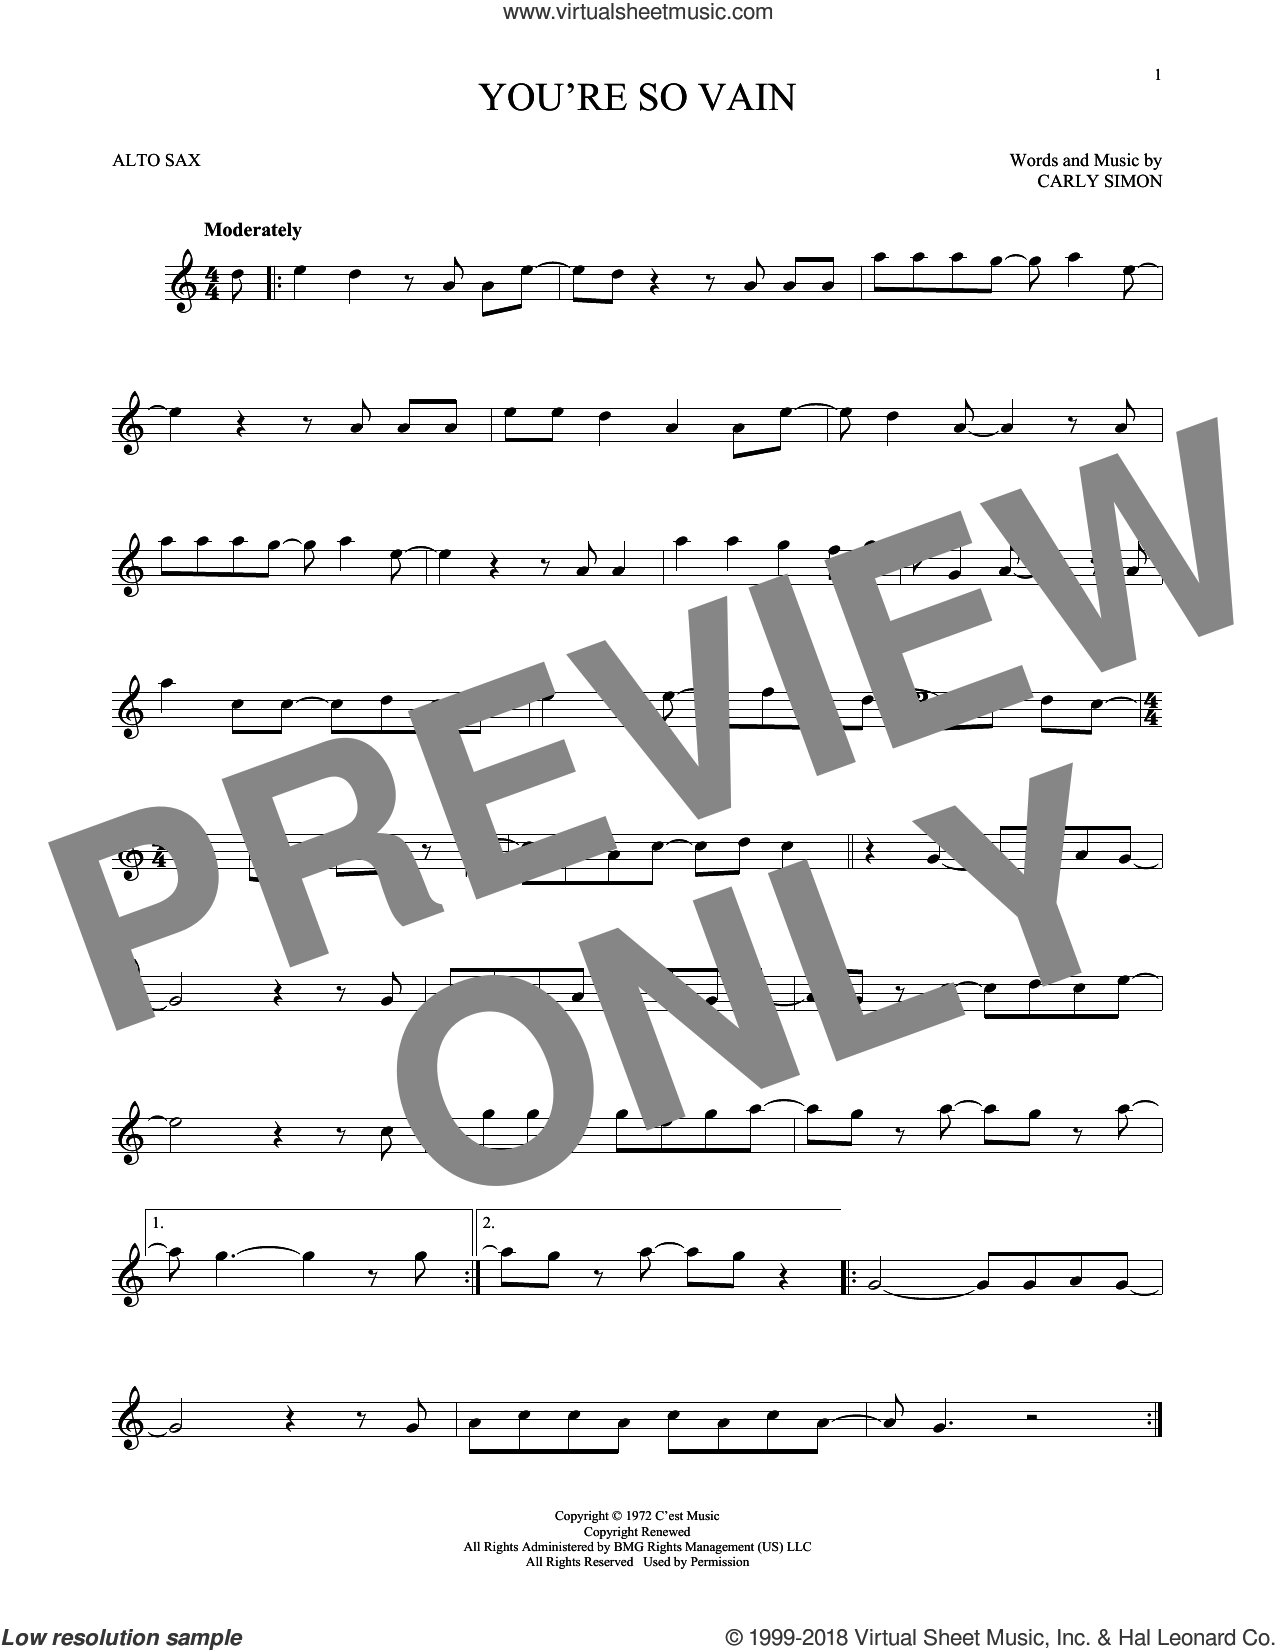 You're So Vain sheet music for alto saxophone solo by Carly Simon, intermediate skill level